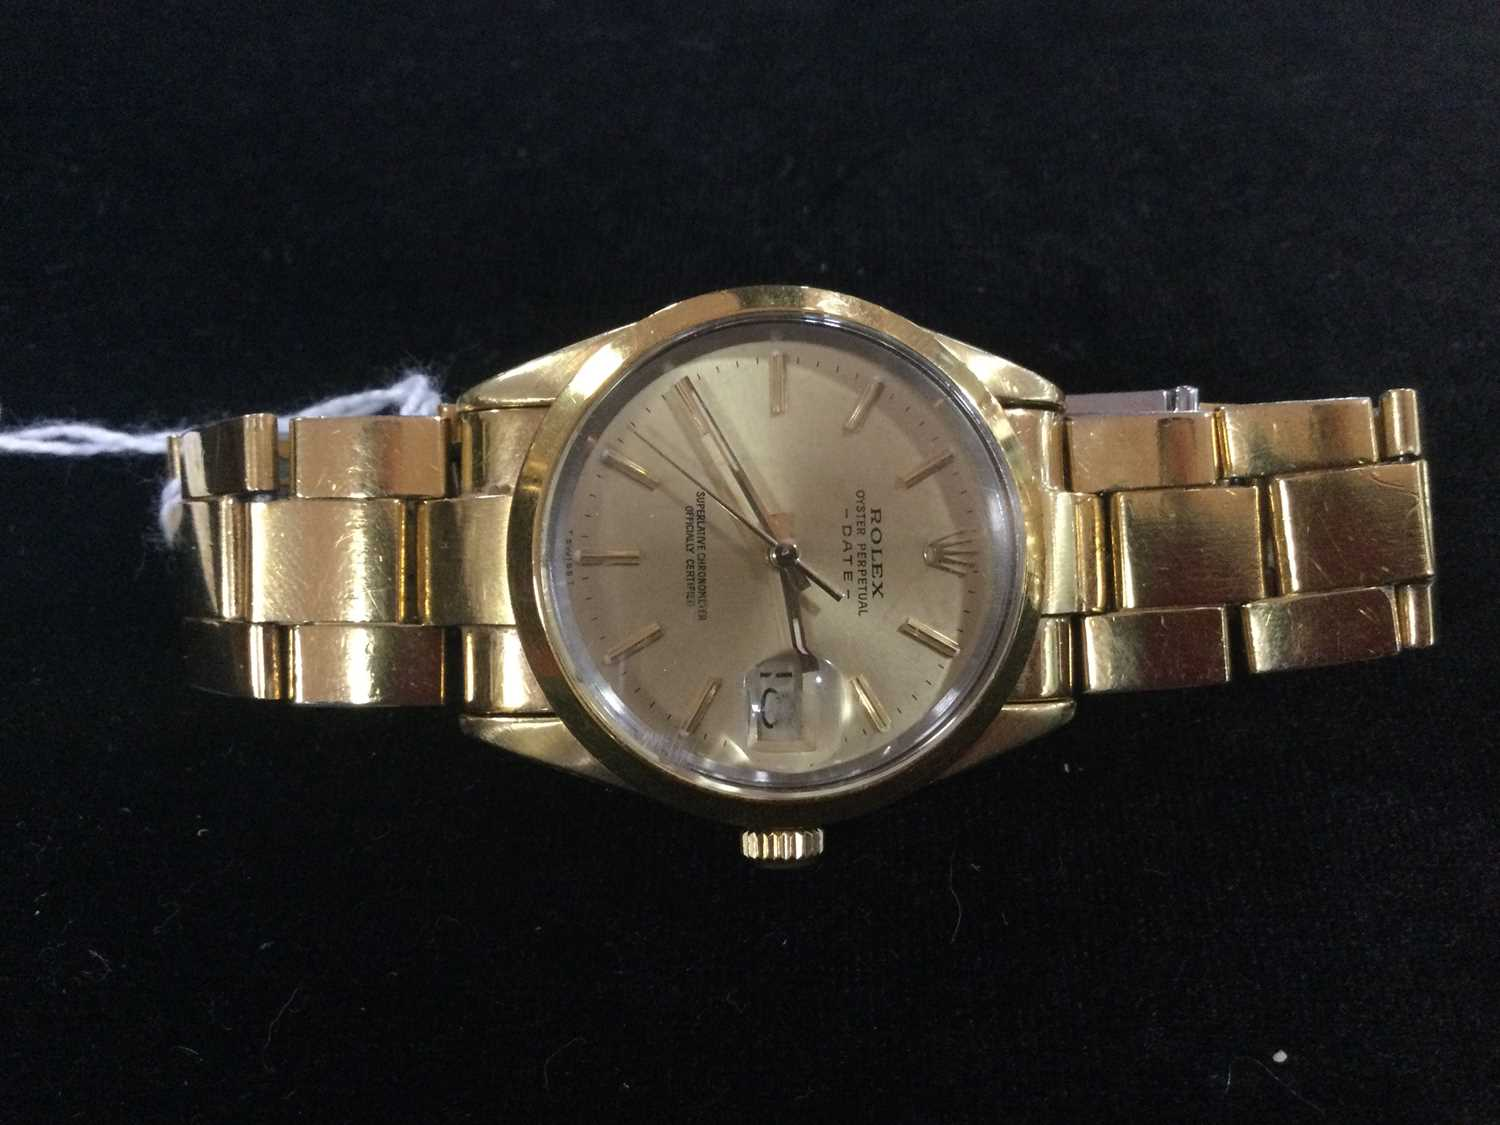 A GENTLEMAN'S ROLEX GOLD PLATED OYSTER PERPETUAL DATE AUTOMATIC WRISTWATCH - Image 11 of 13